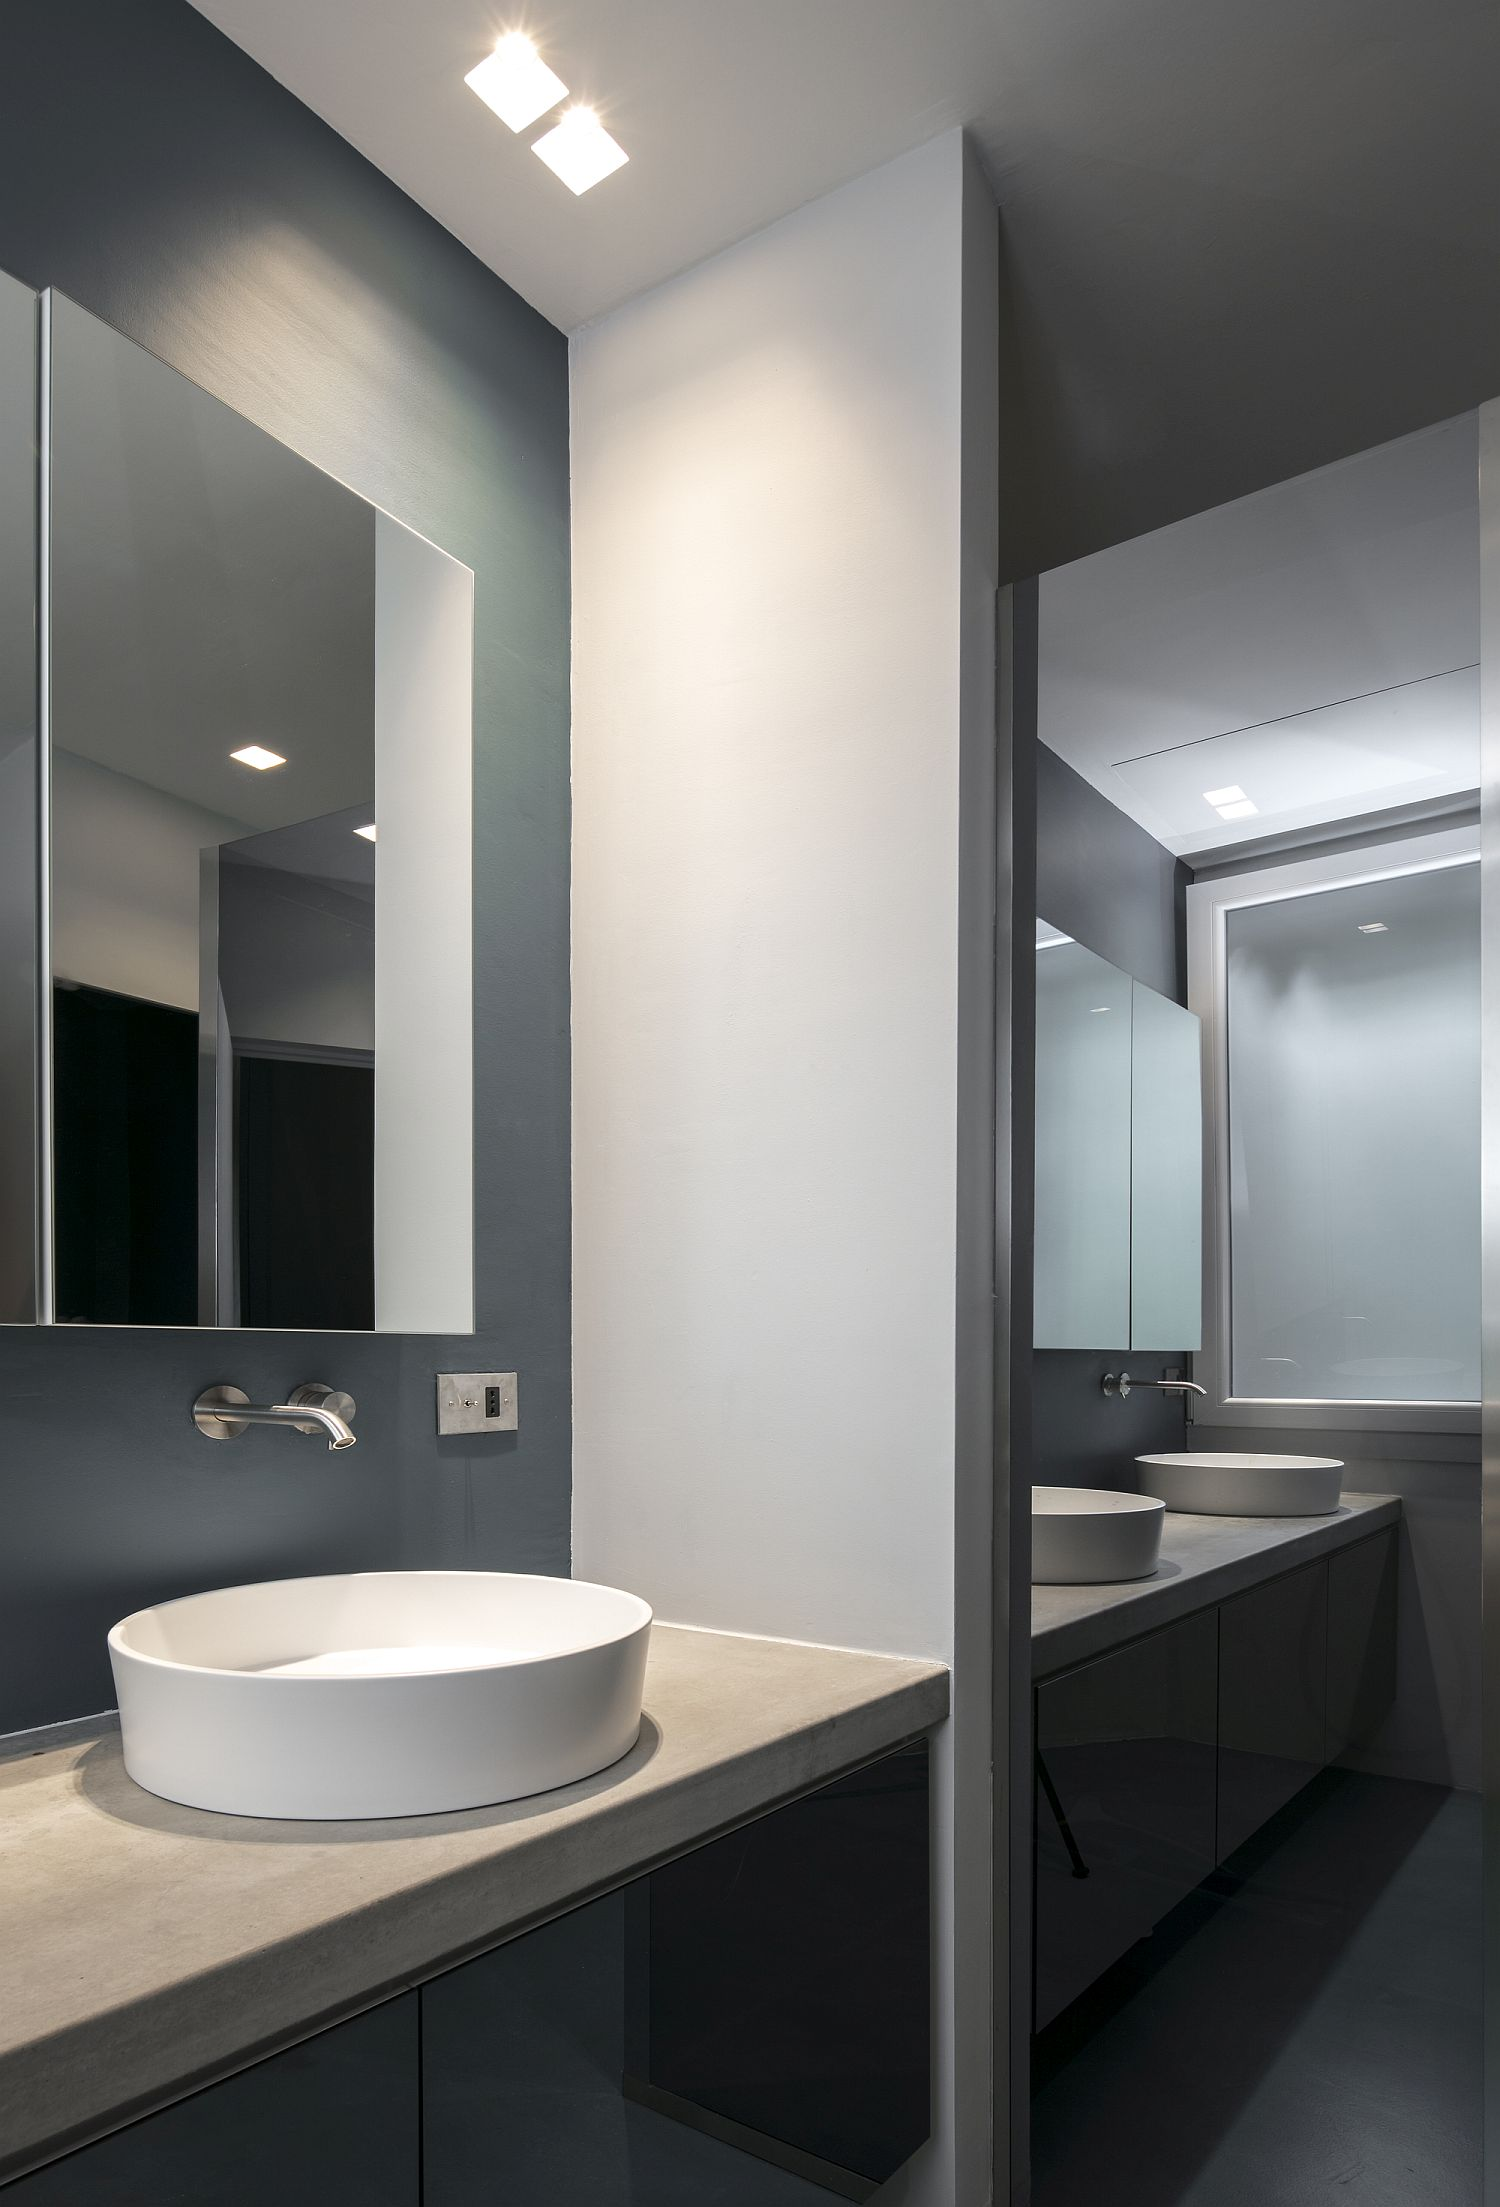 Contemporary bathroom in gray with lighting that is even and elegan